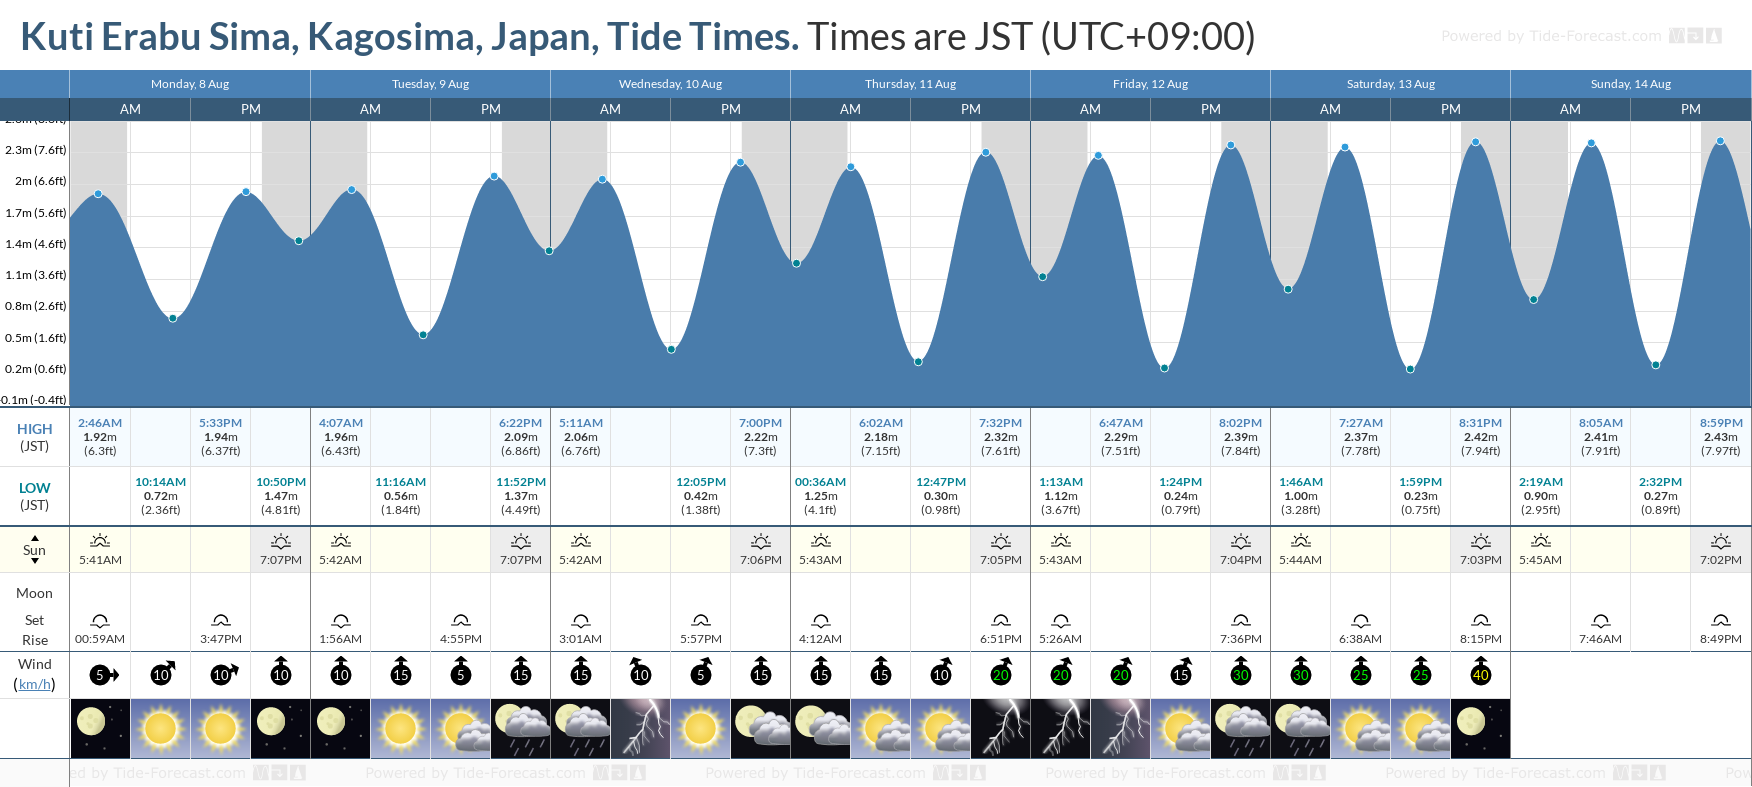 Kuti Erabu Sima, Kagosima, Japan Tide Chart including high and low tide tide times for the next 7 days